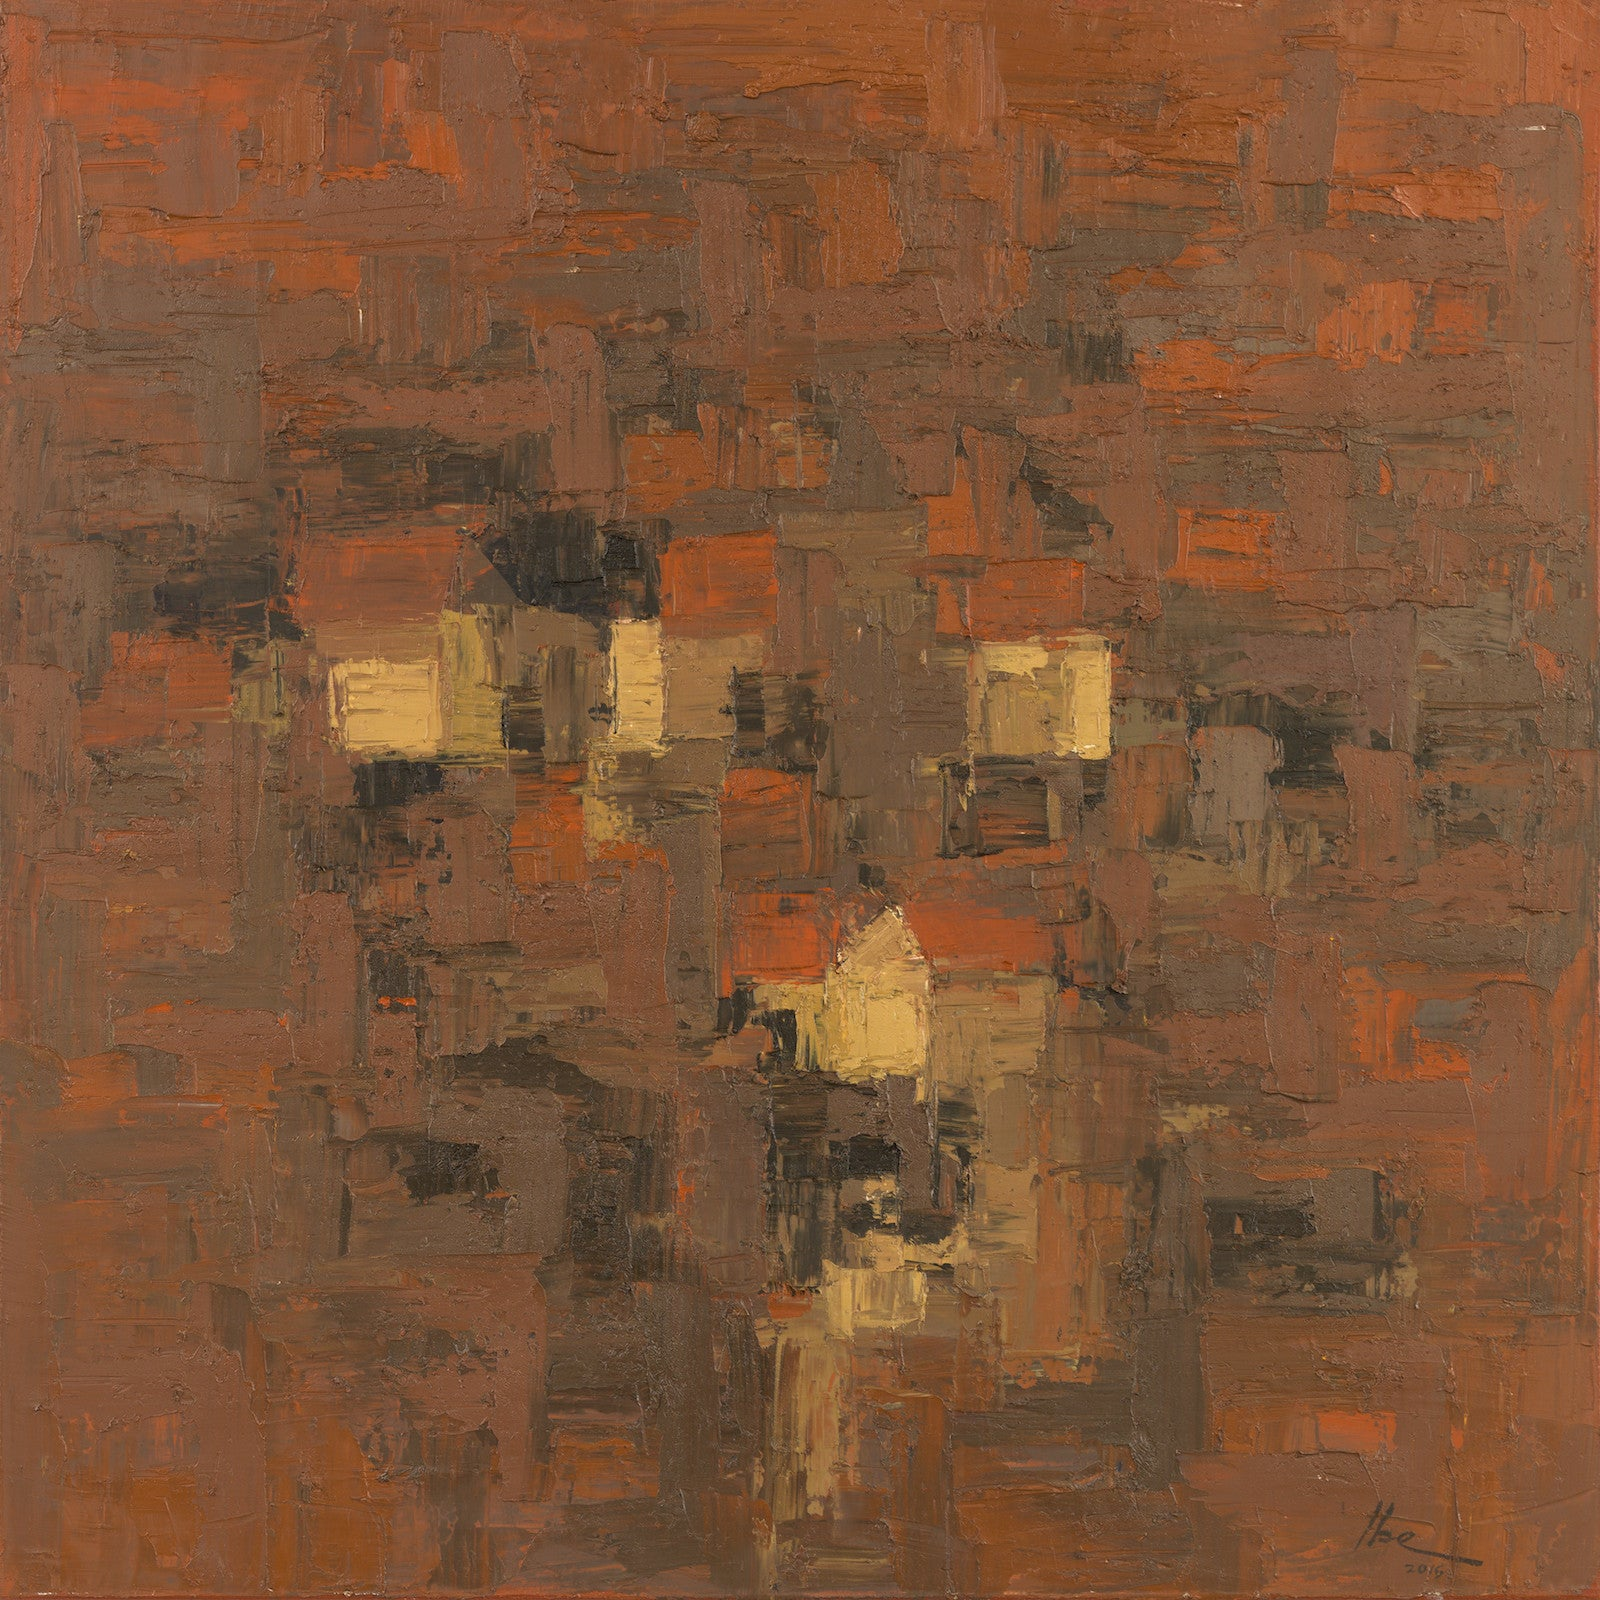 Onyeka Ibe, Structure 64, oil on canvas, 36x36